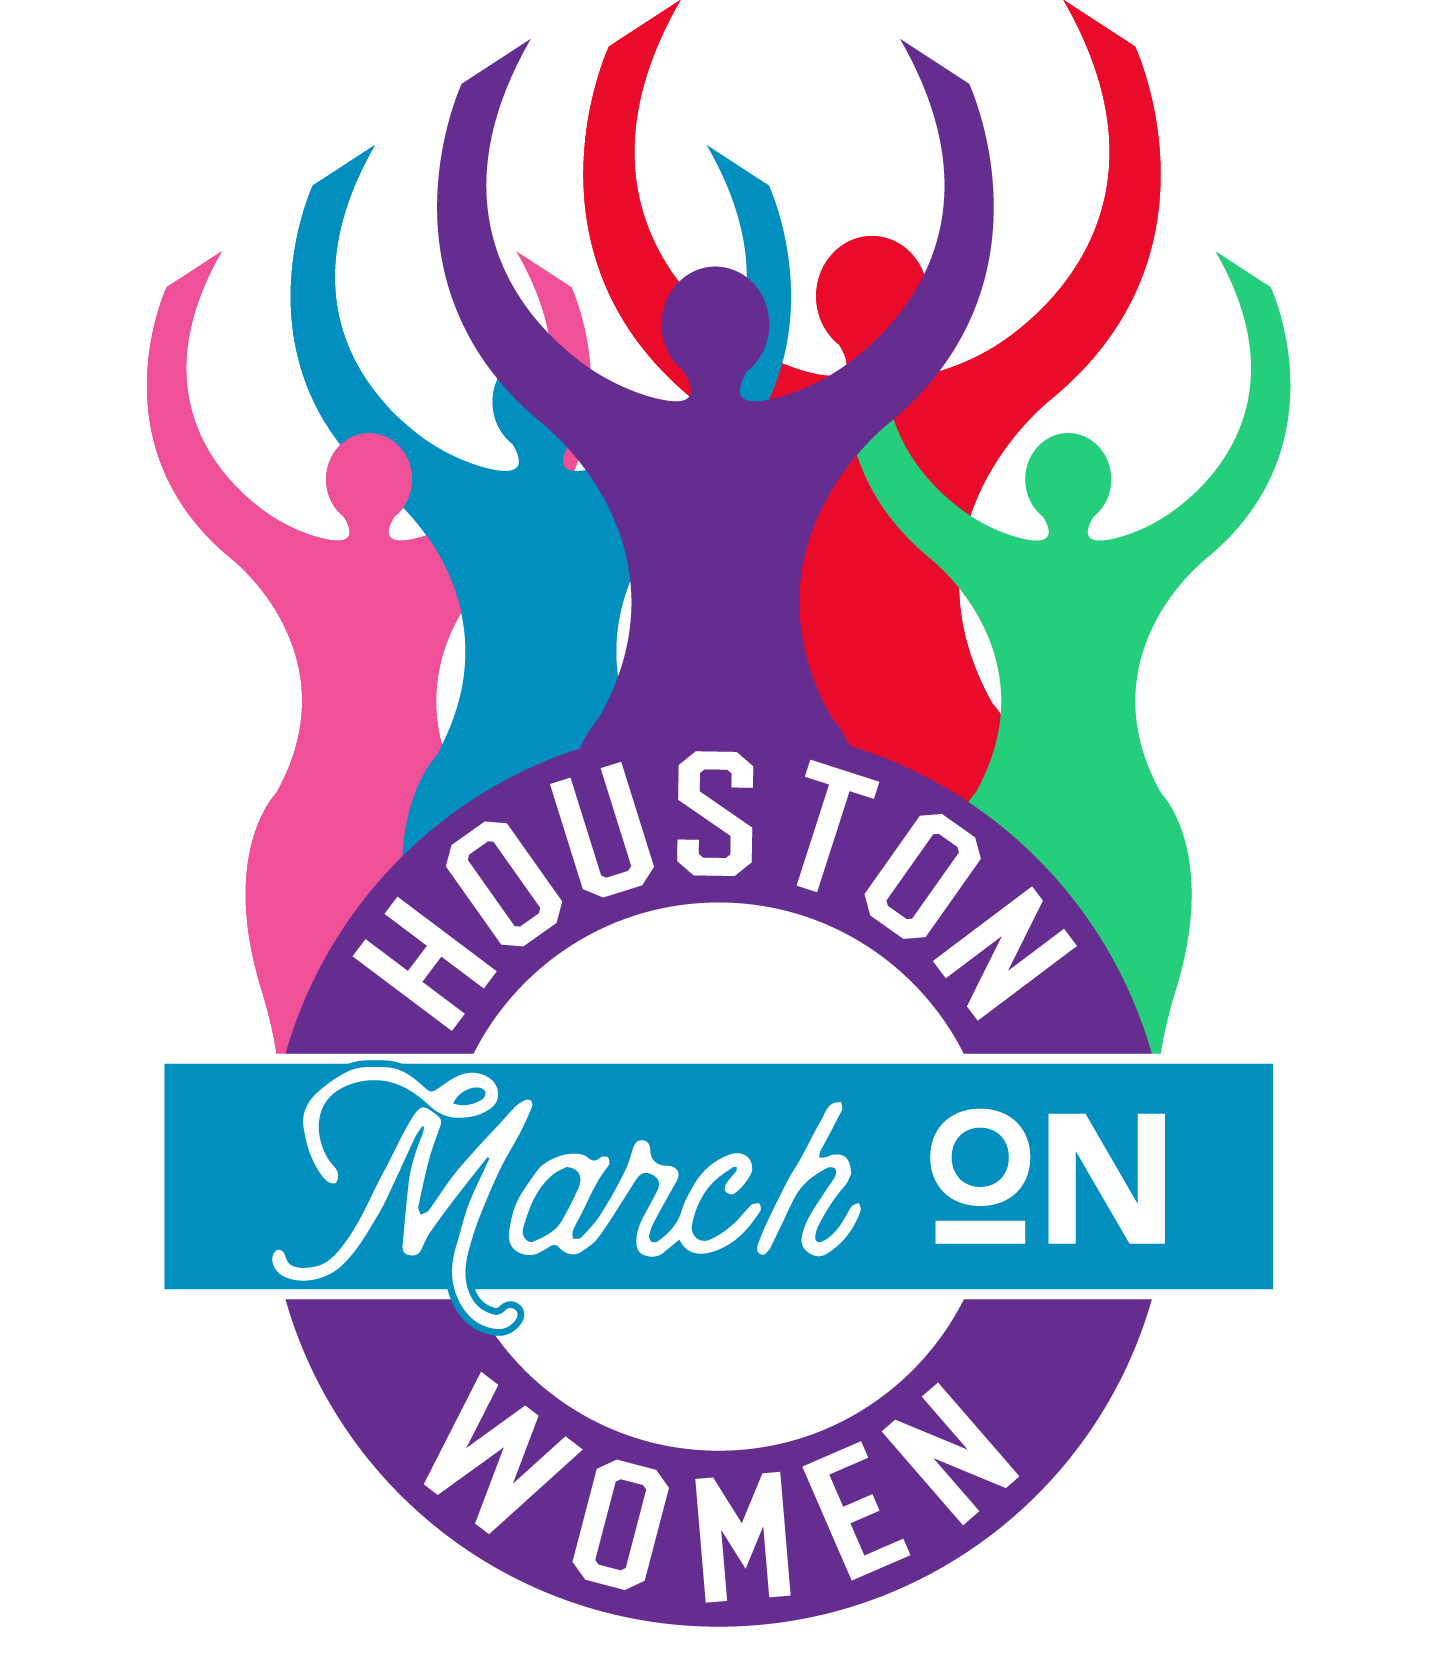 Houston Women March On